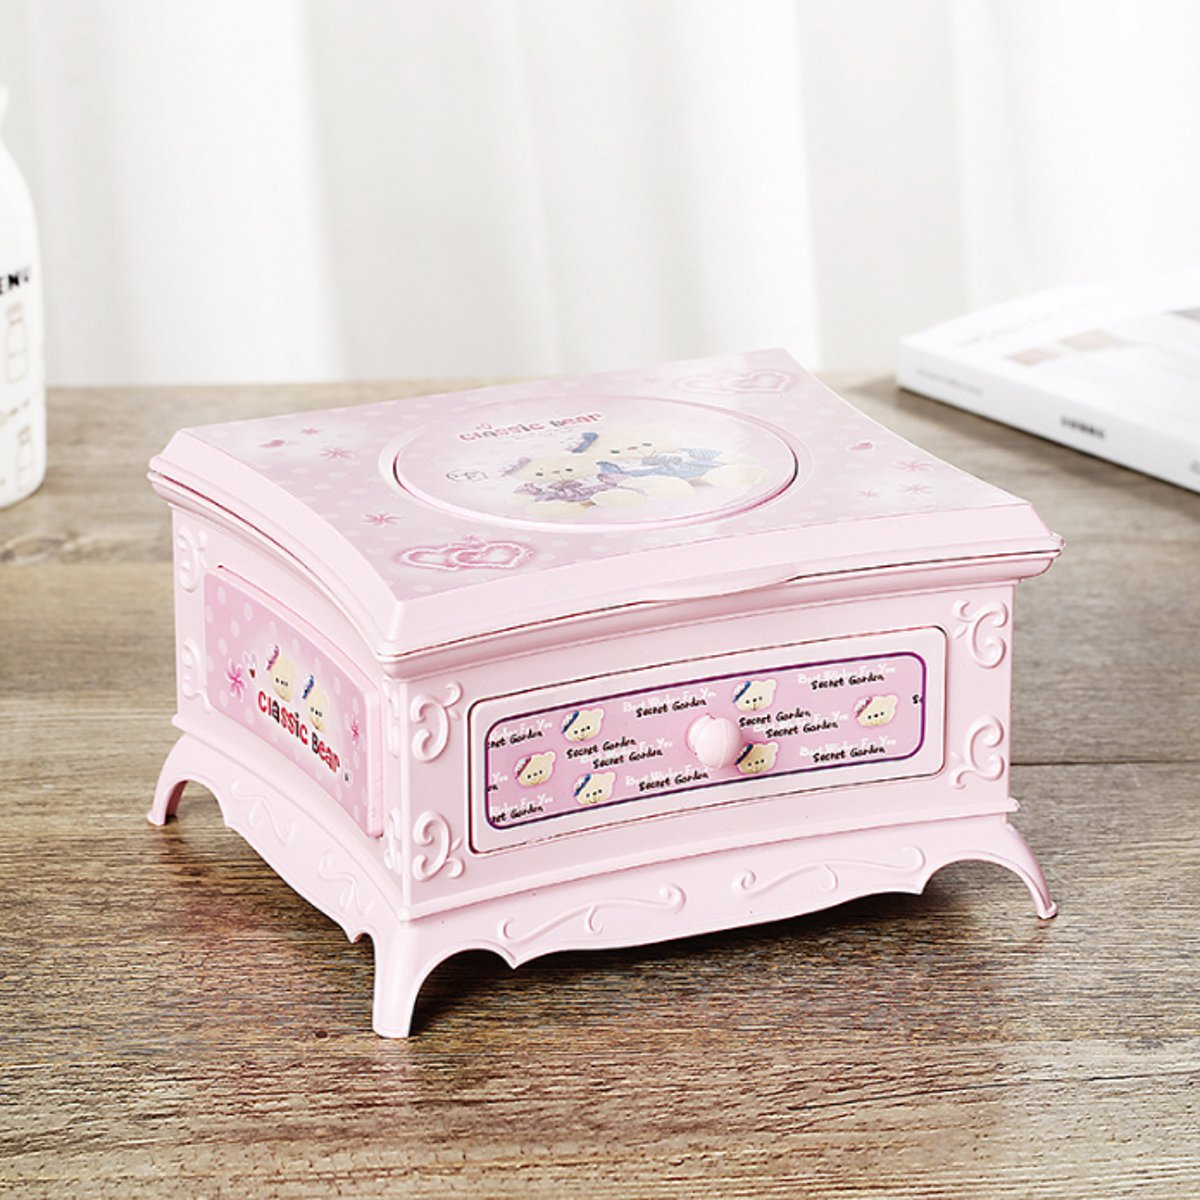 Moaere Childhood Memories Ballerina Musical Jewelry Box Birthday Gift